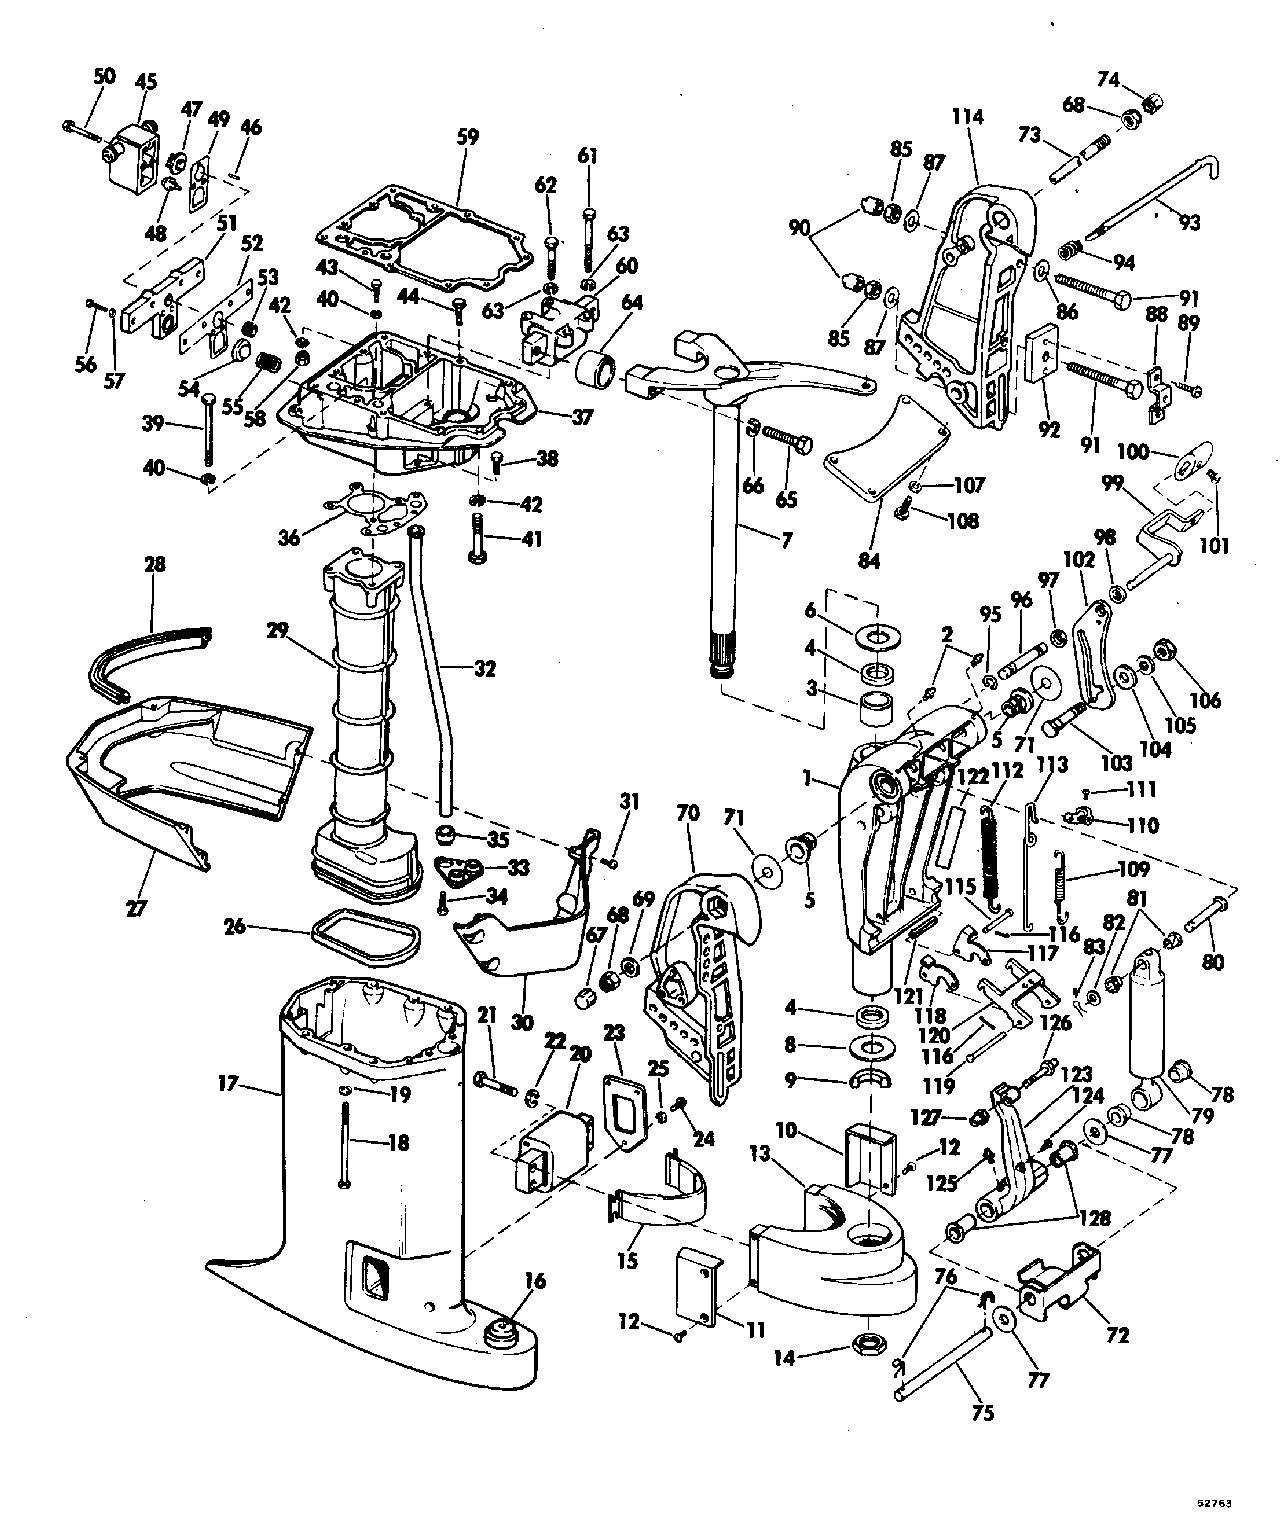 Evinrude Outboard Motors Fuel Pump Diagram Reinvent Your Wiring Schematics For Johnson Outboards Cooling Water Flow Rh Coolingwaterwakizai Blogspot Com Engine 25 Hp